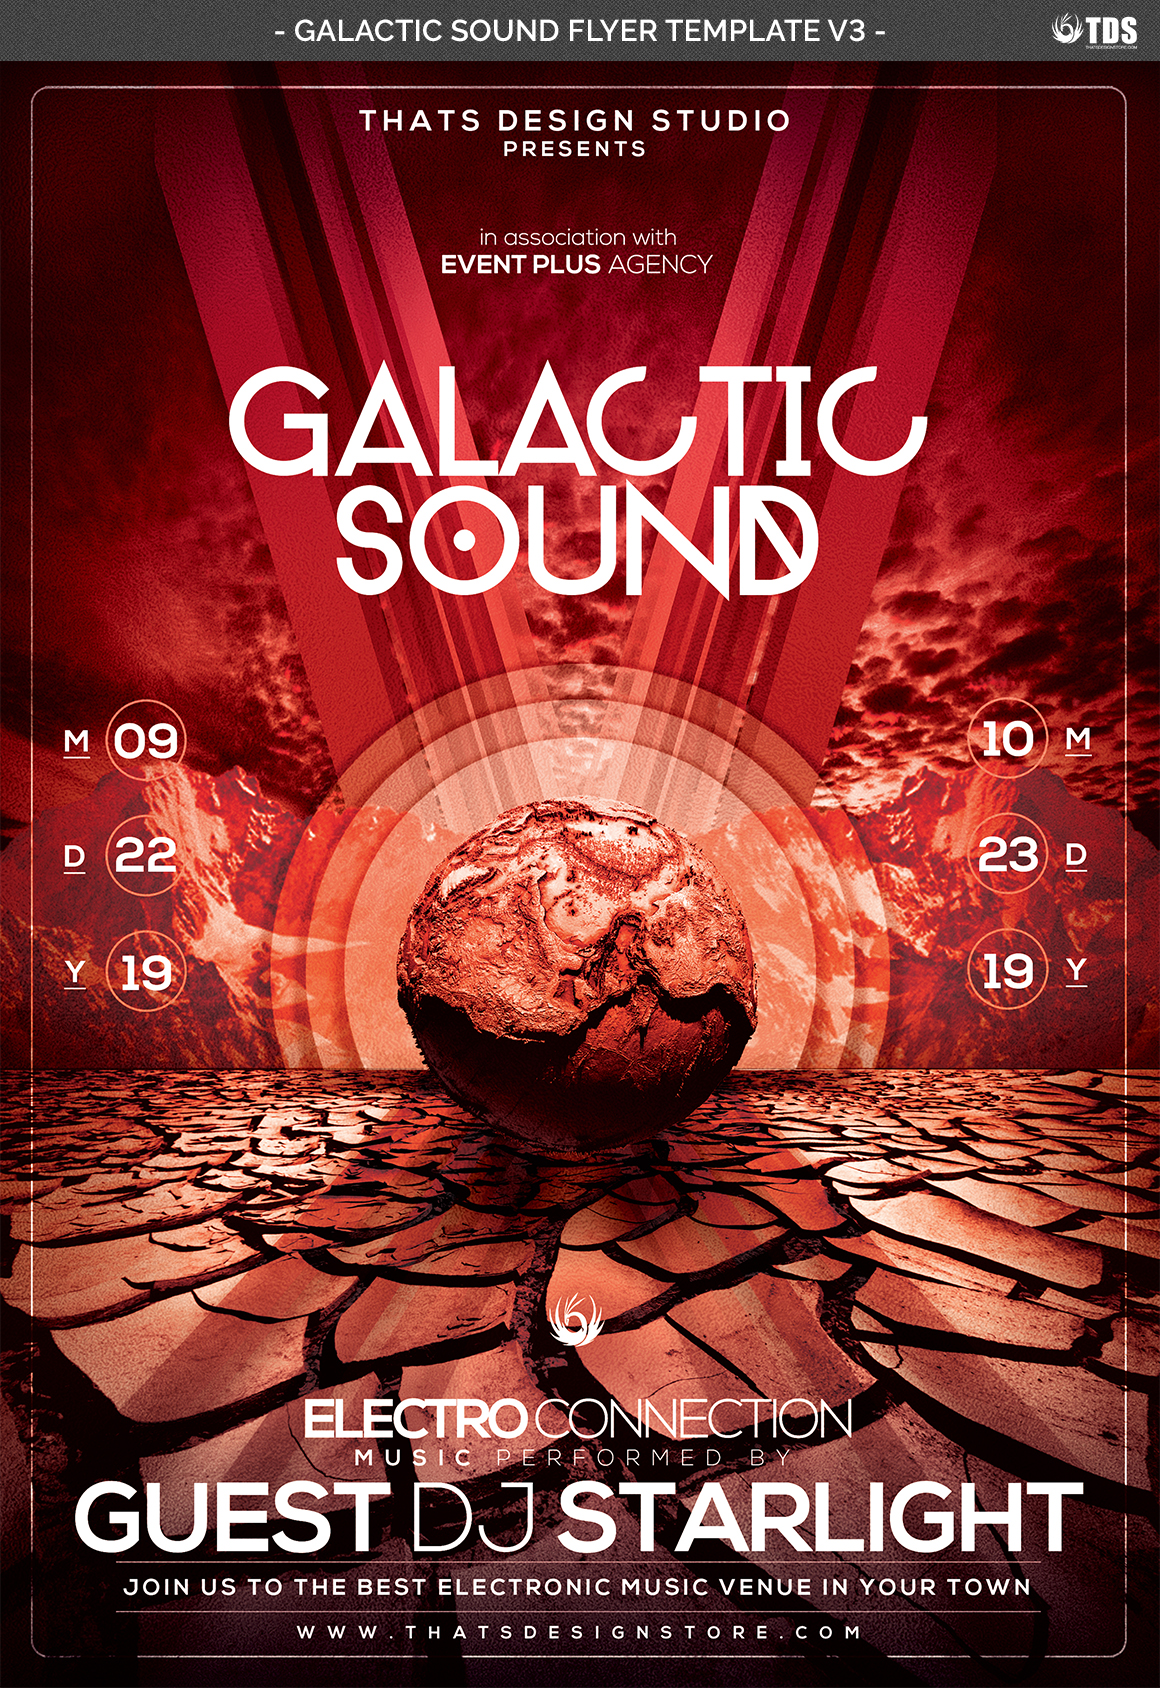 Galactic Sound Flyer Template V3 example image 4